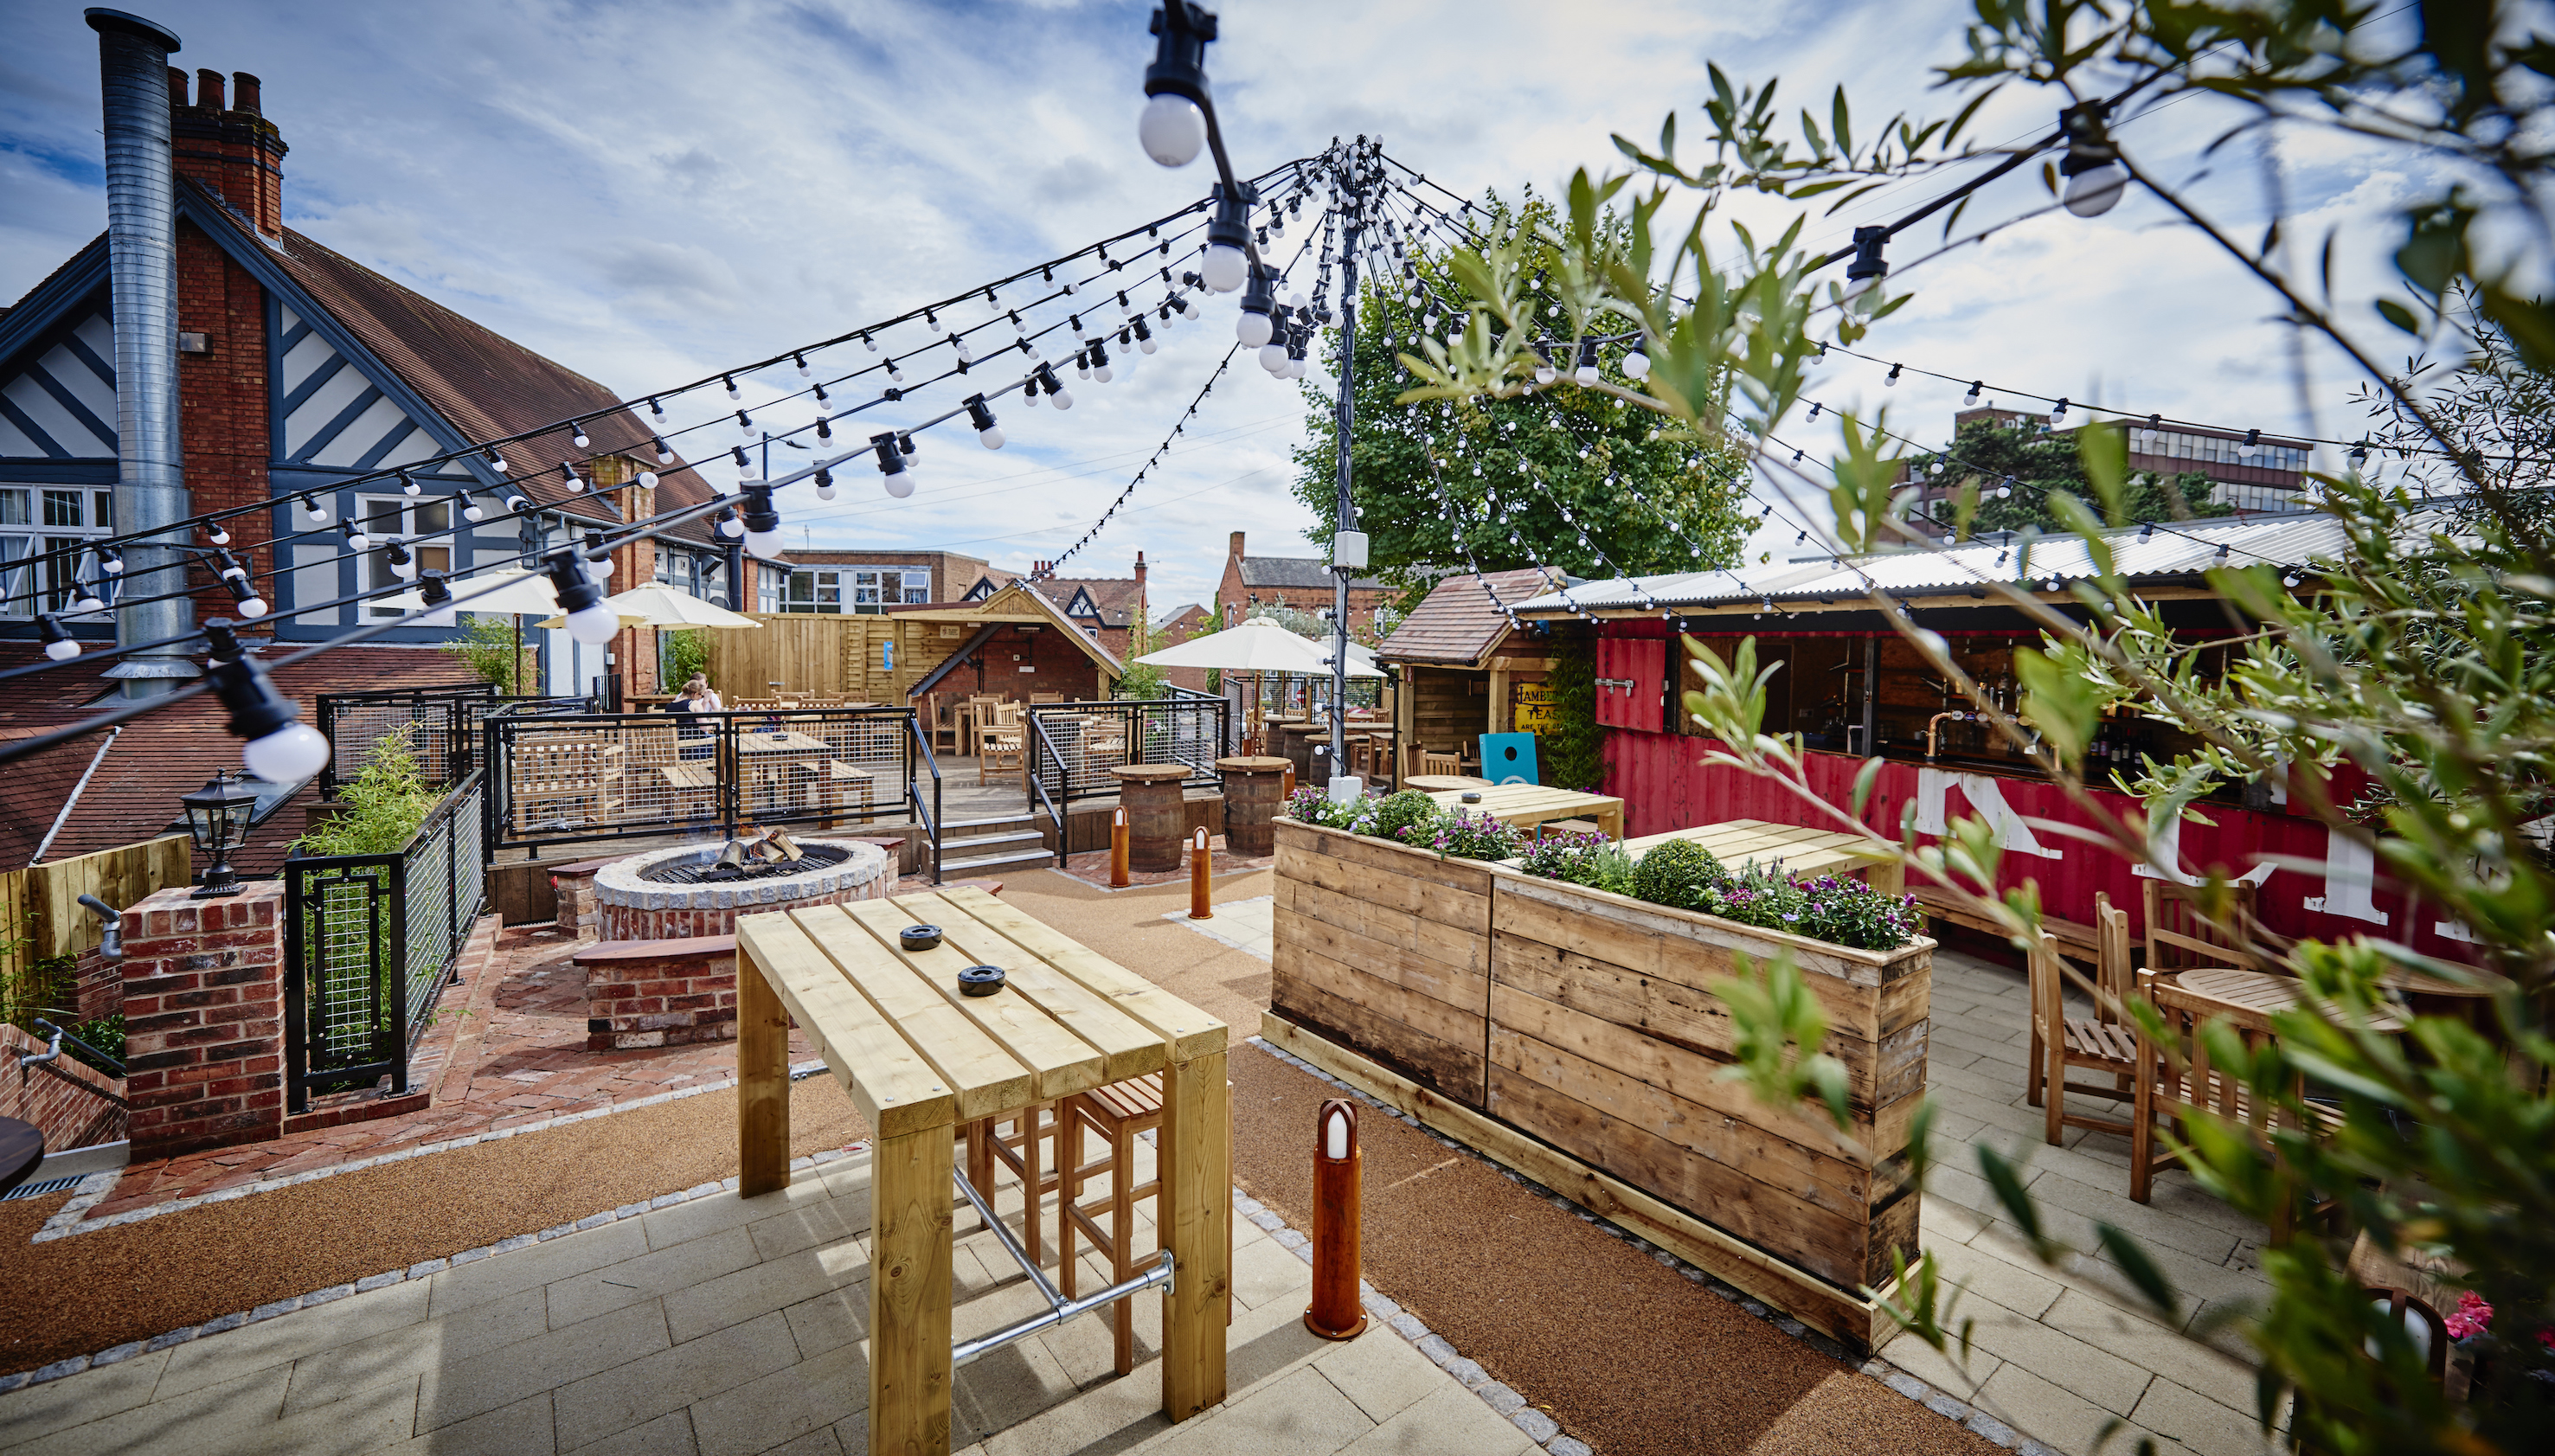 News: There's a new garden area 'Hopping Up' in Sutton Coldfield at Brewhouse & Kitchen